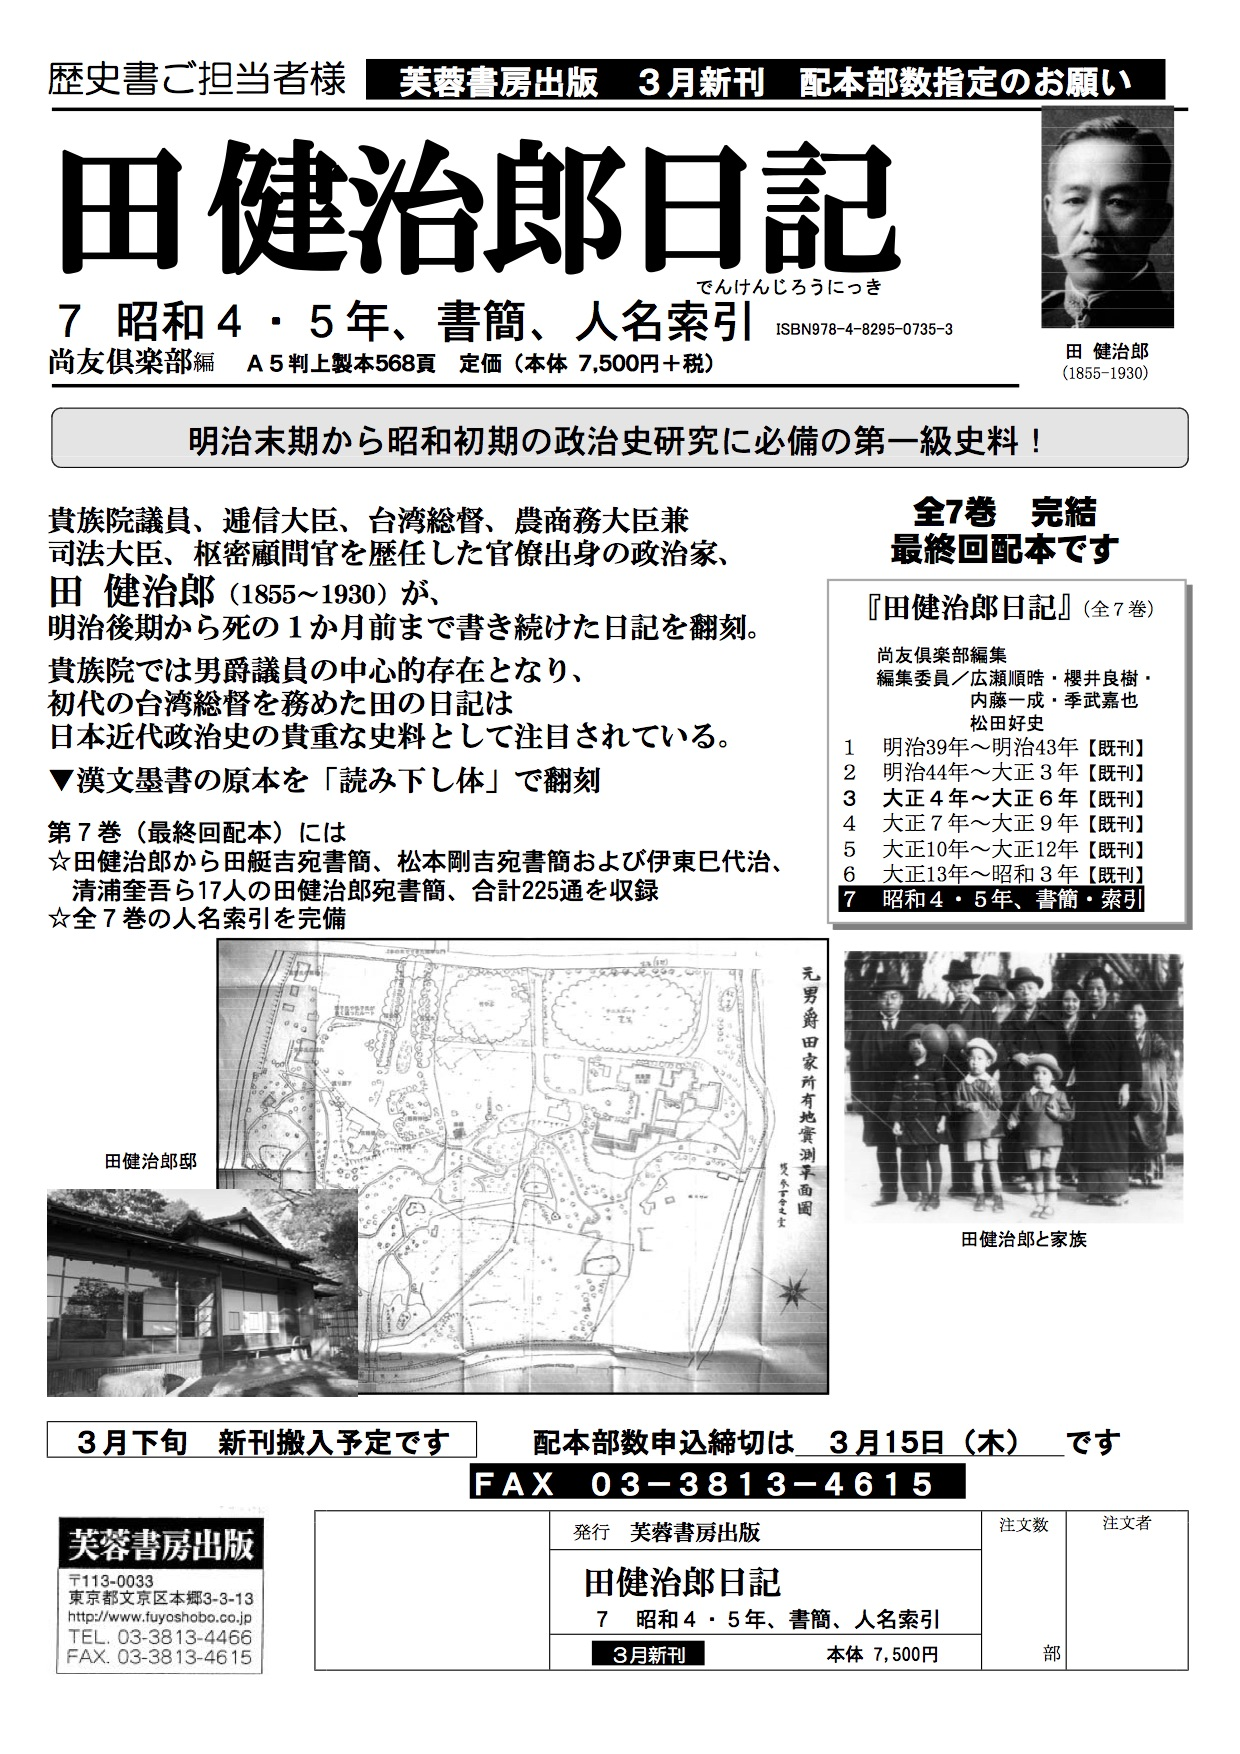 Category:錦鶏間祗候 (page 1) -...